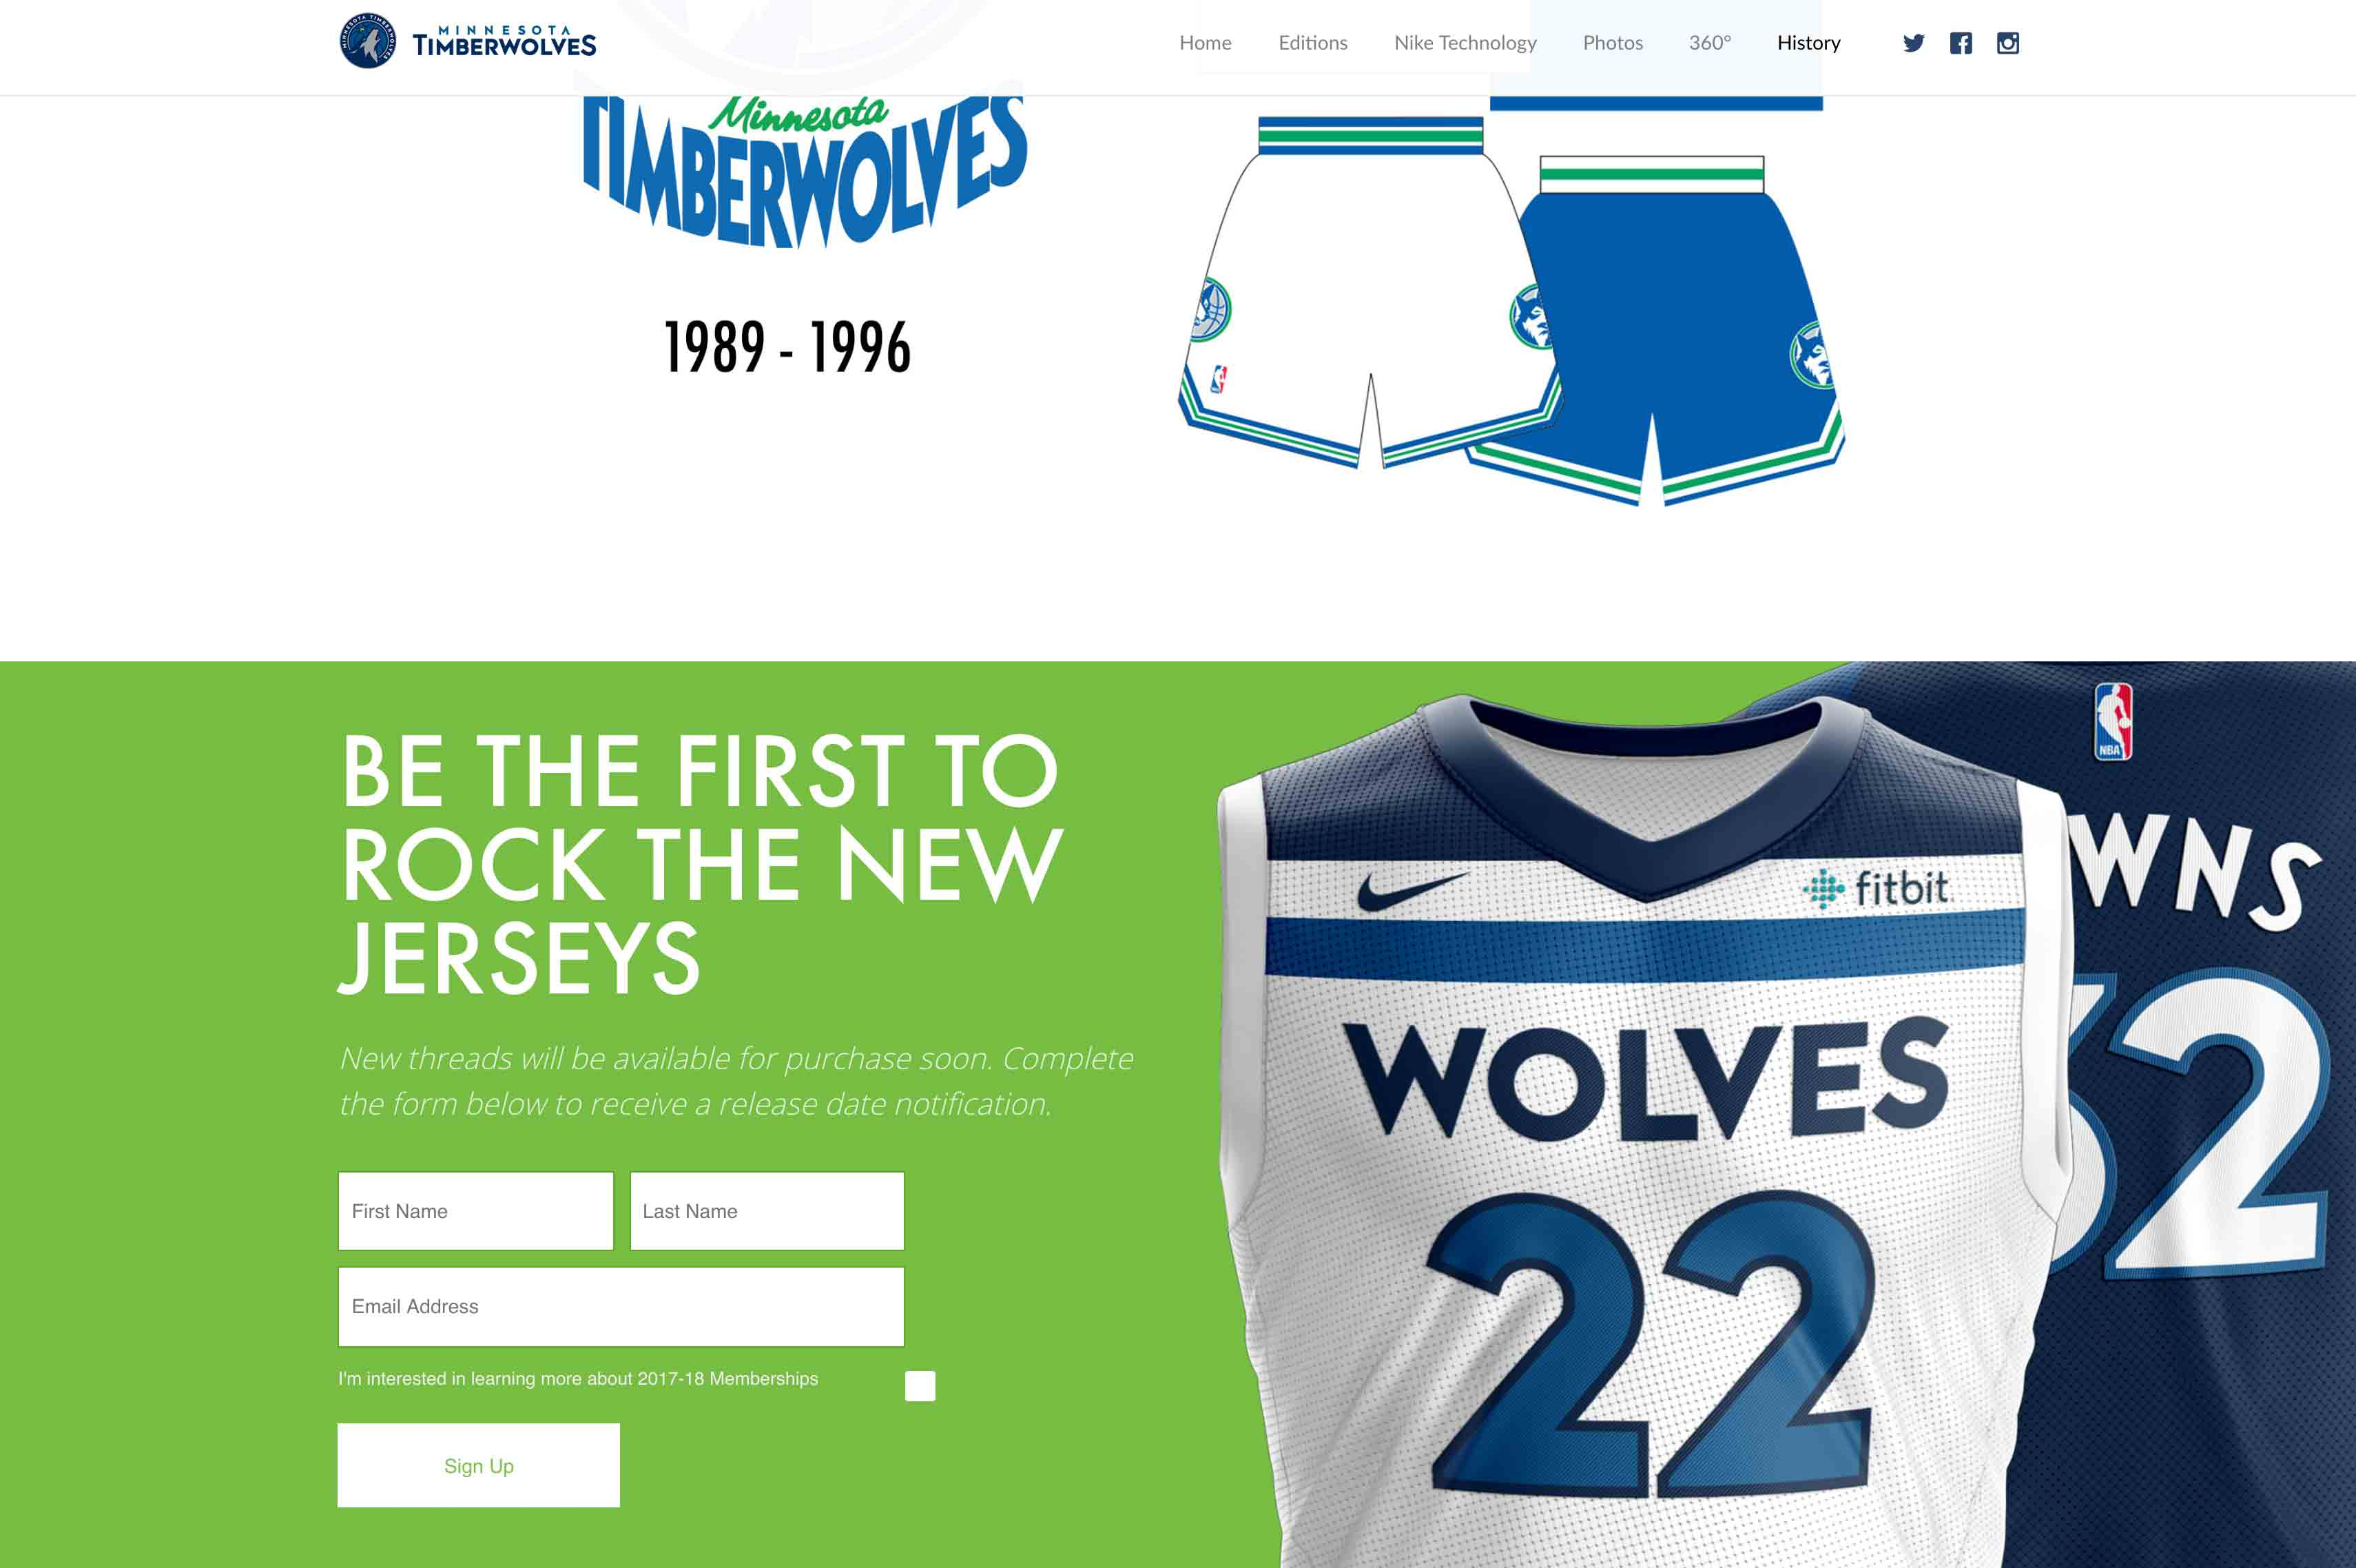 MN Timberwolves New Threads Project: Desktop View, Lead Generation Section